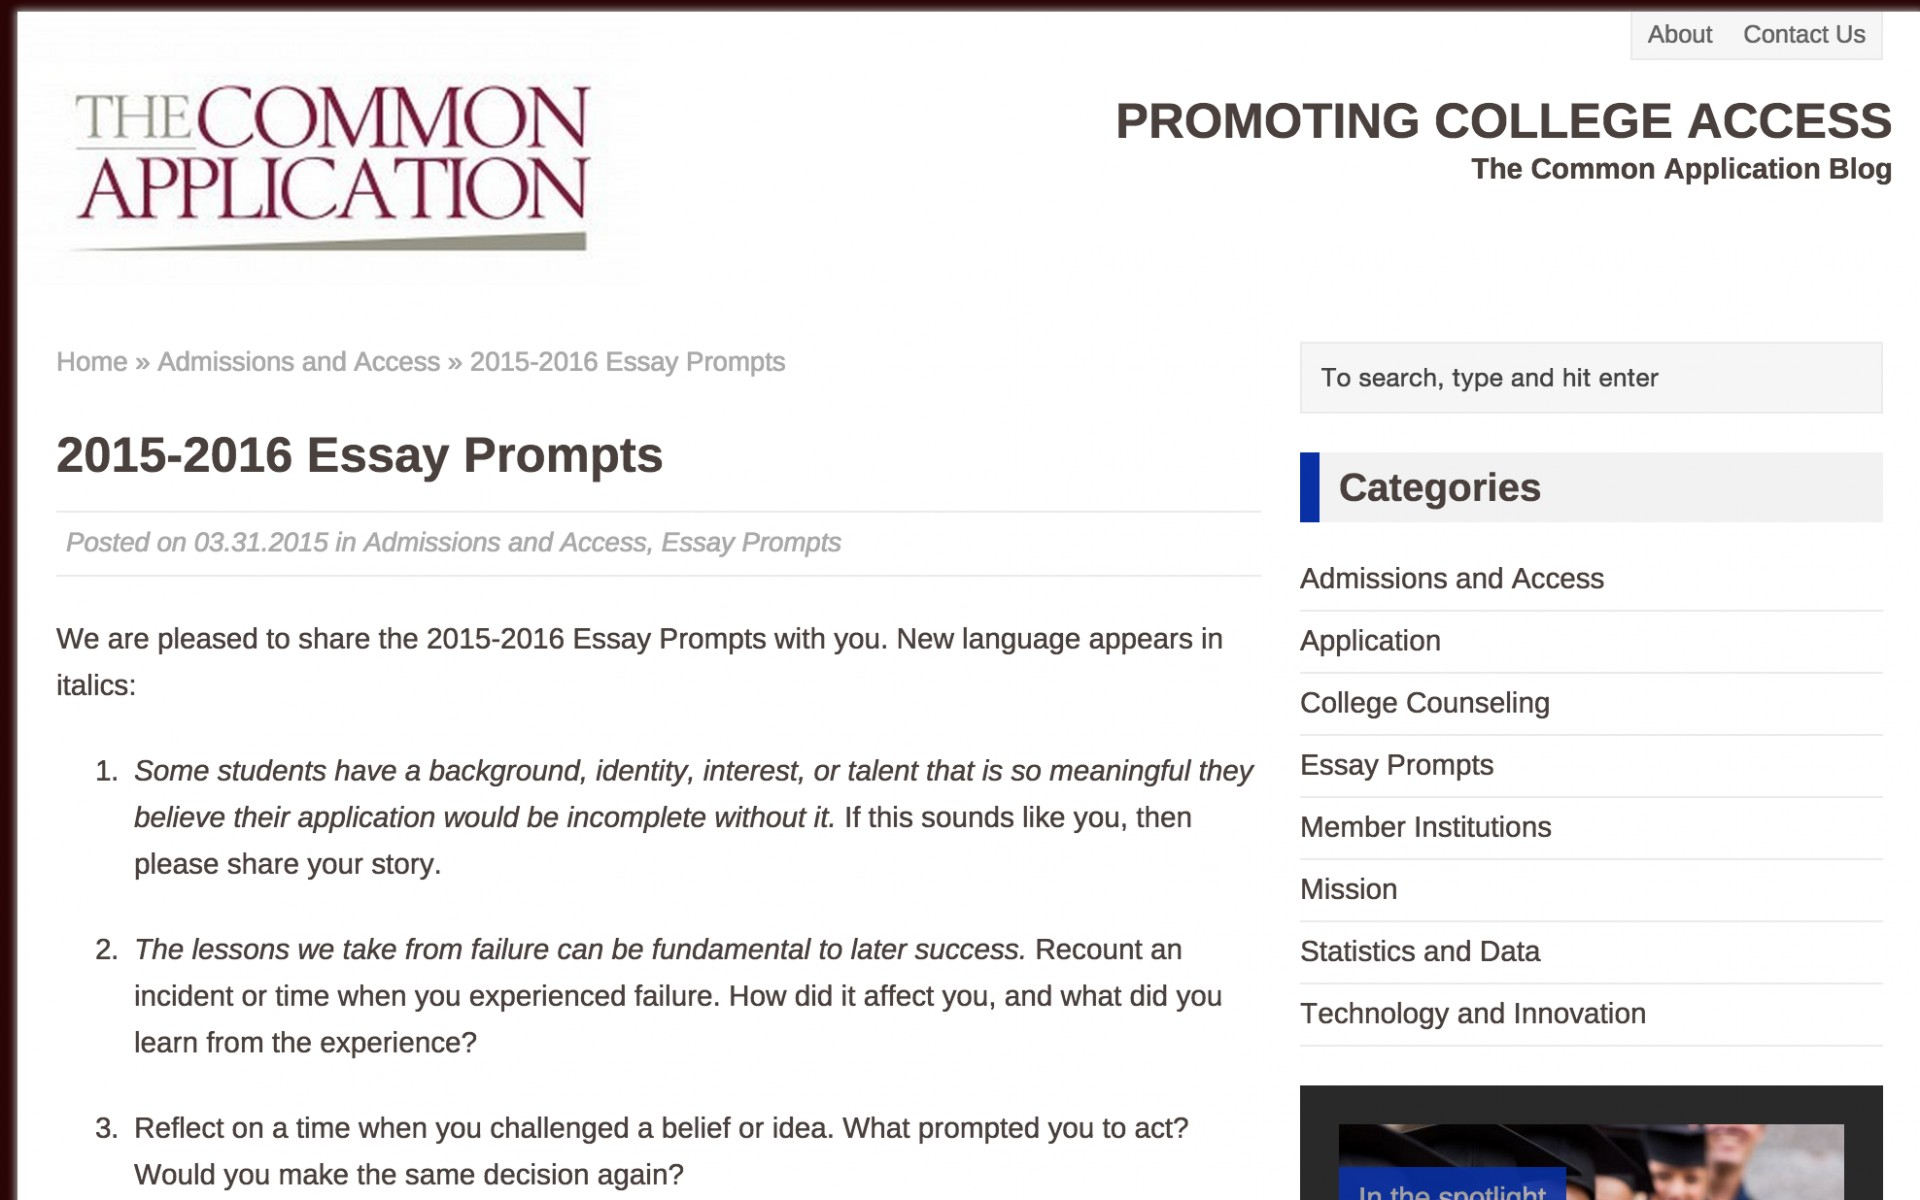 005 Screen Shot At Pm College Essay Prompts Shocking 2015 Admission 1920